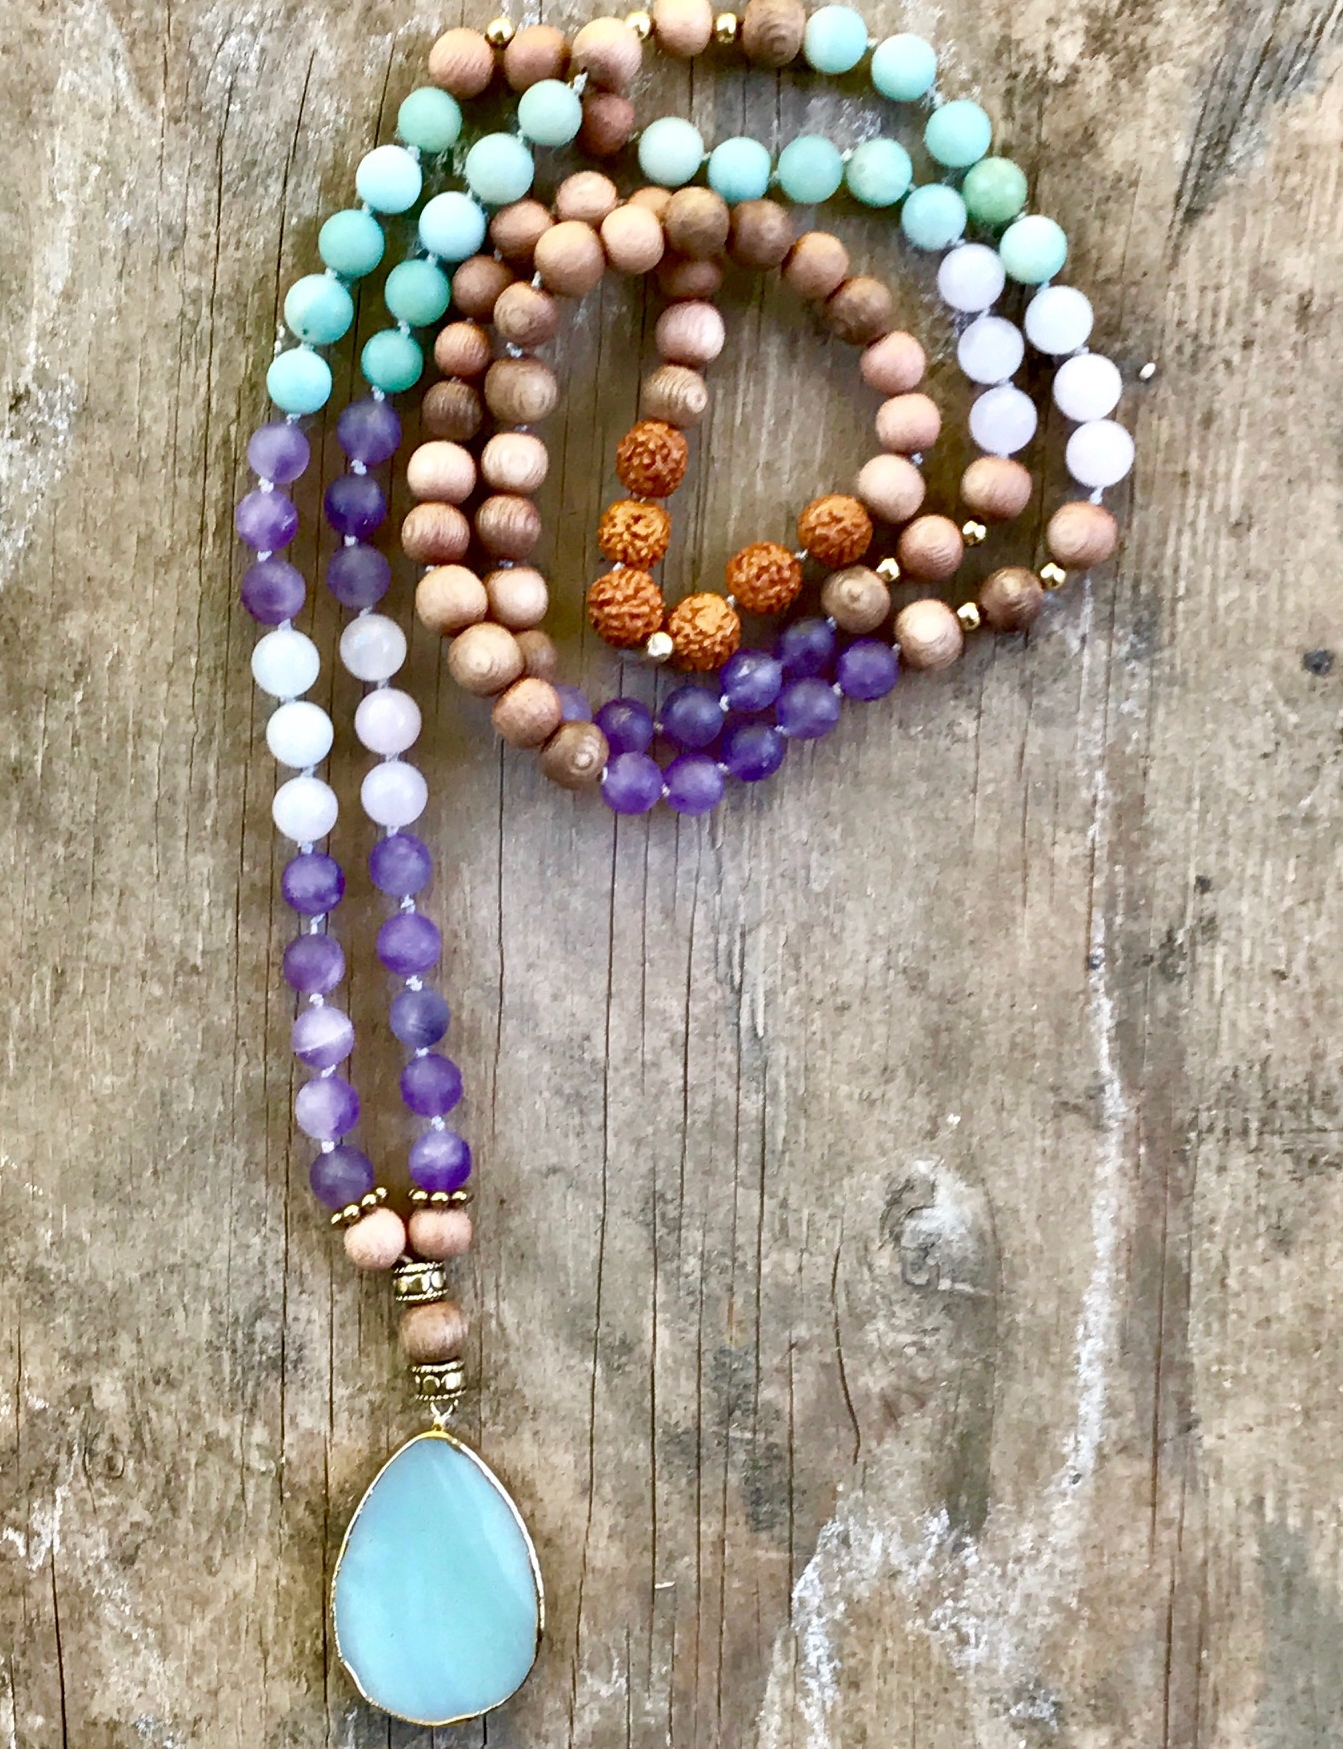 Process - Once you email me sharon@sharonotness.com the process begins. We will schedule a 30 minute phone consultation. I will coach you during our time together and gather information to make this Mala uniquely yours. We will discuss your desires, dreams, goals and intentions as well as color and metal preferences, tassel or pendant. I design the piece, and ship it to you.